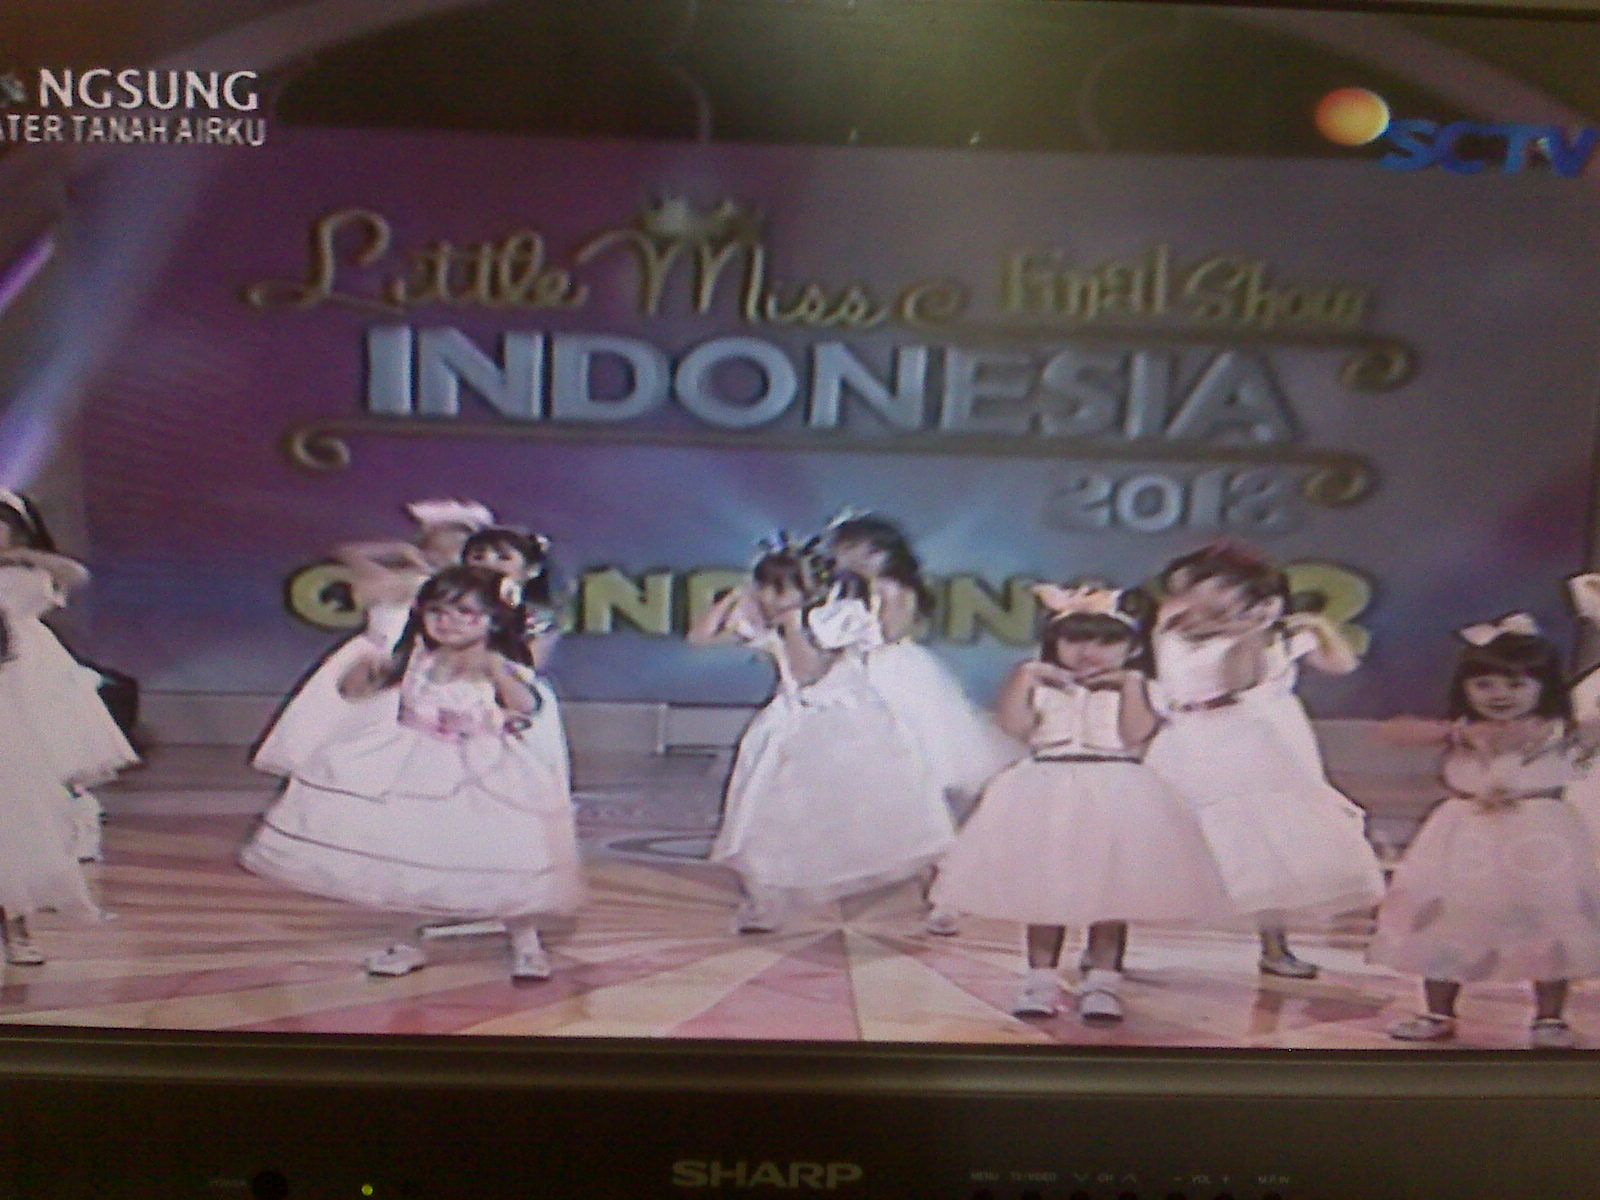 Konsep grand final 2 little miss indonesia 2013 dengan 17 peserta